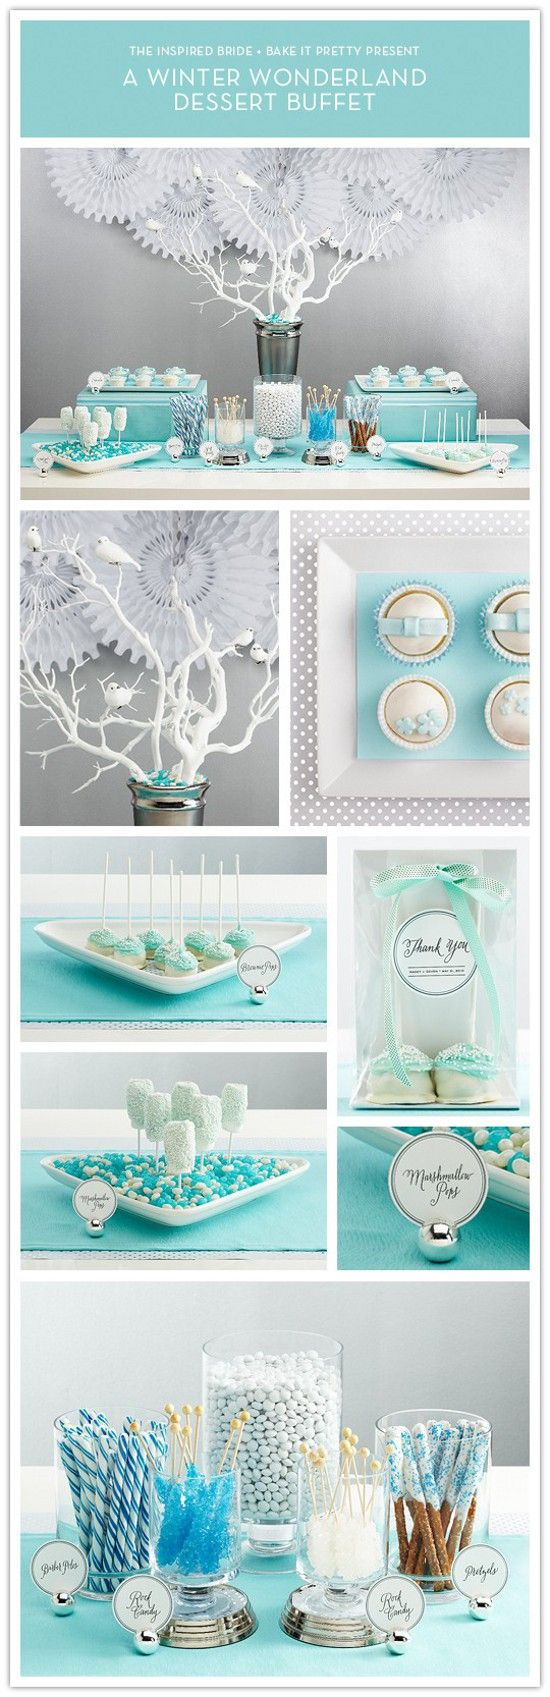 Tiffany blue theme idea for my next party maybe.. Too late i've already chosen vanilla + lavender theme for my engagement party..